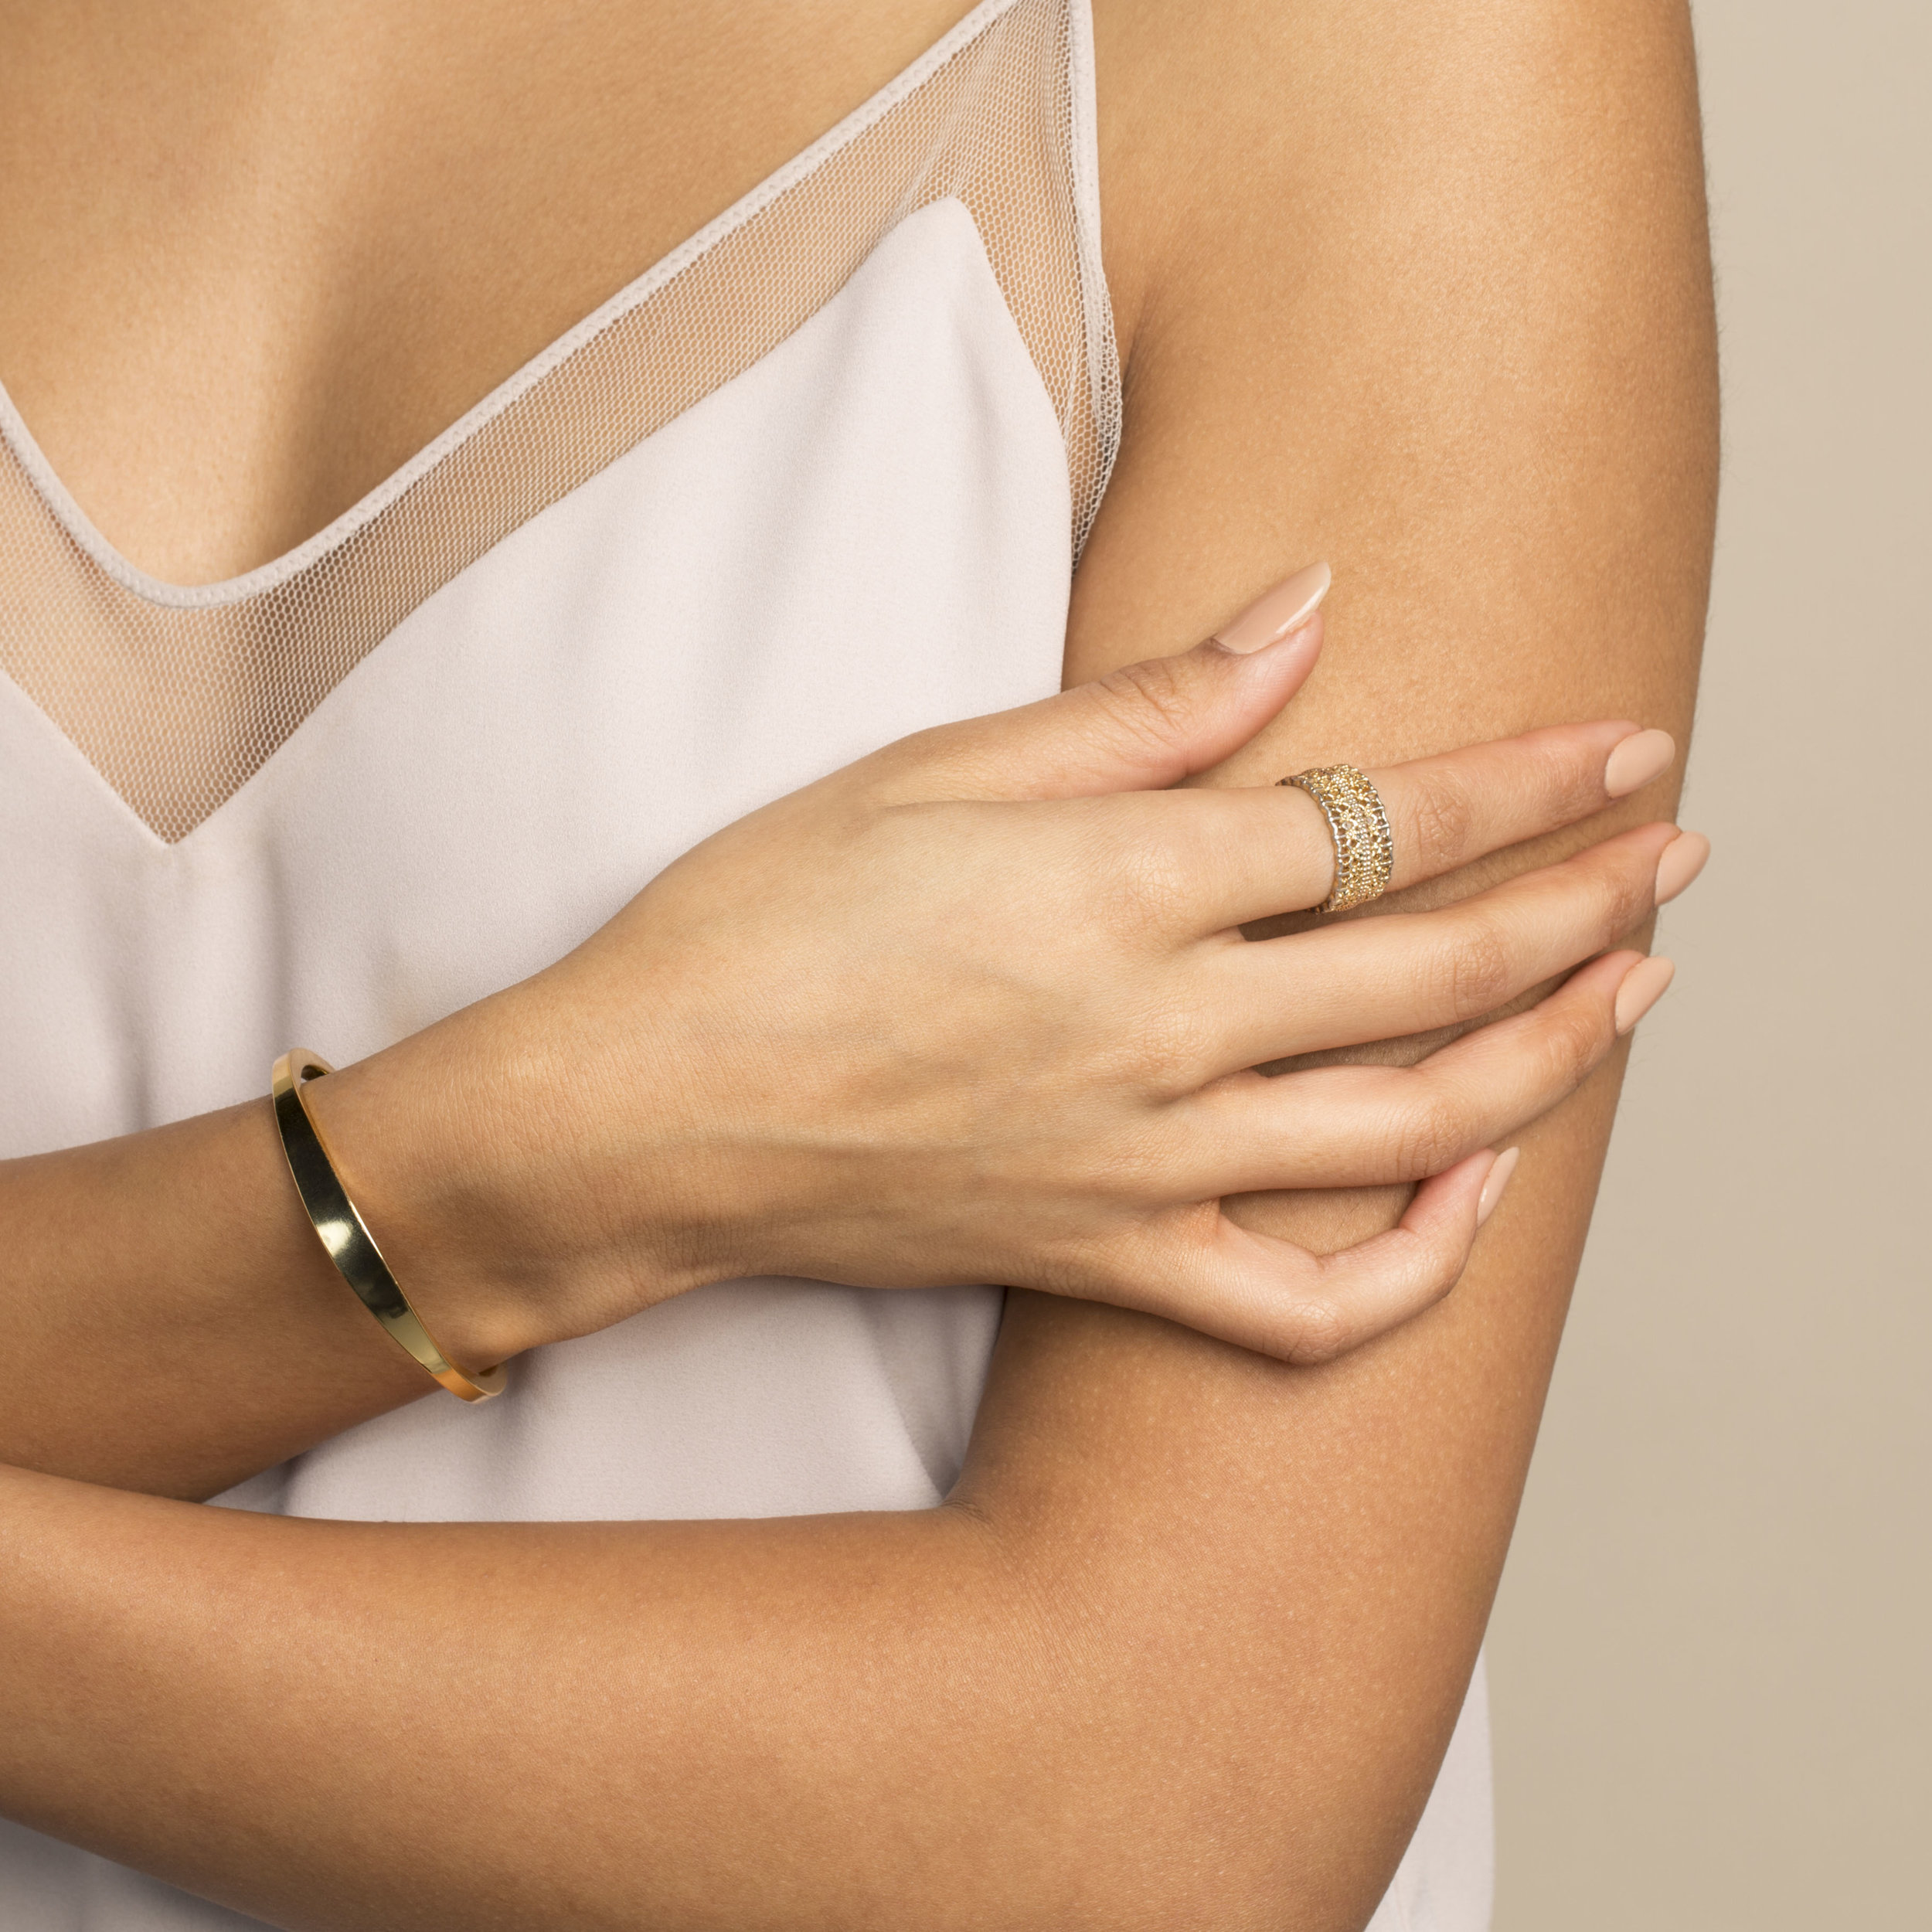 young brown skinned model with manicure wearing camisole, gold bracelet and ring